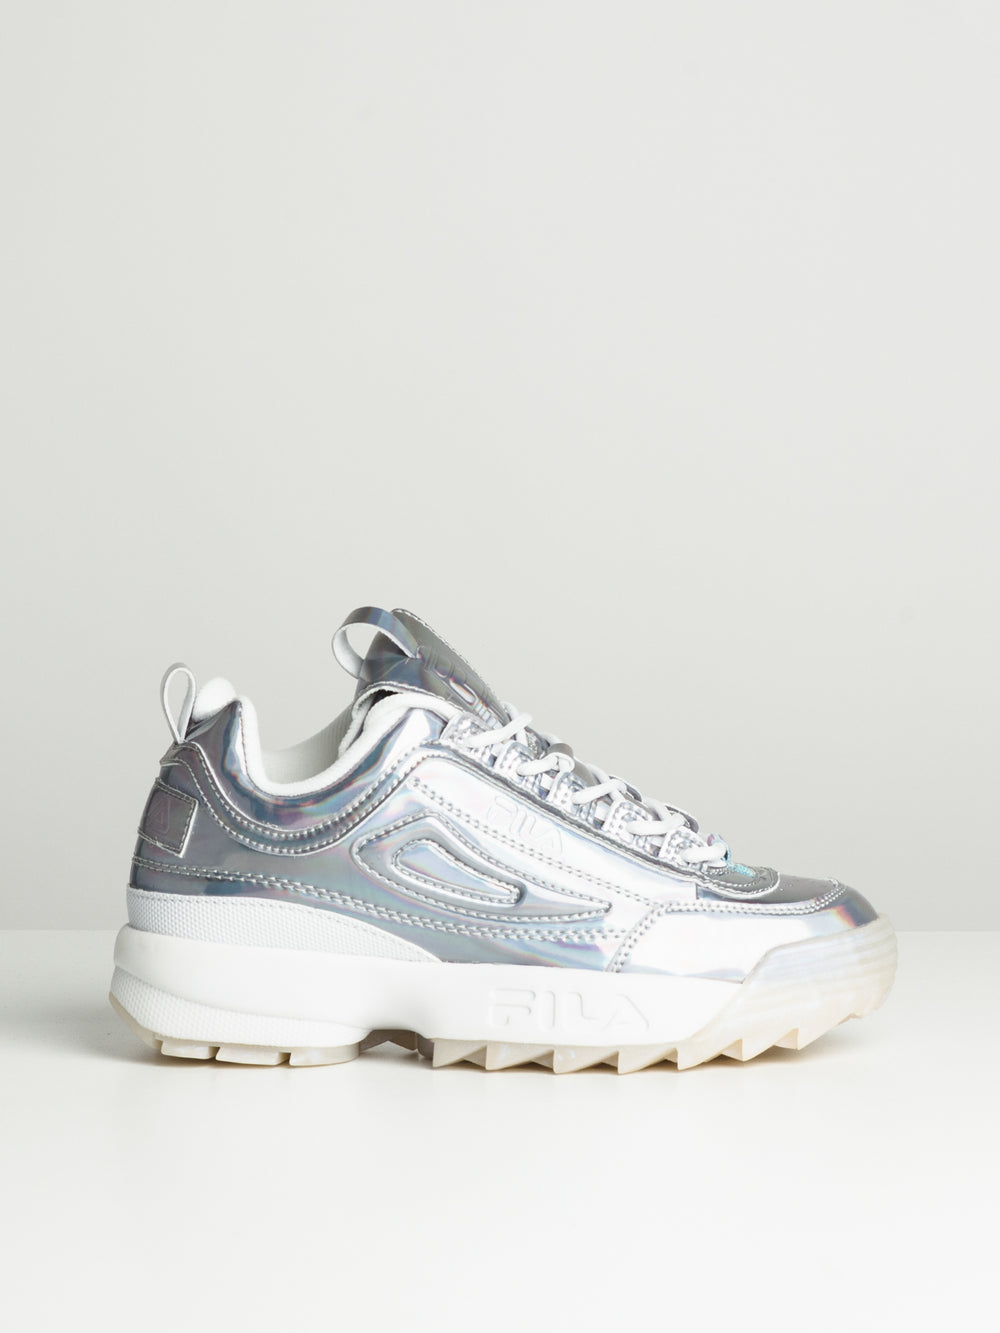 WOMENS DISRUPTOR II IRI - MULTI